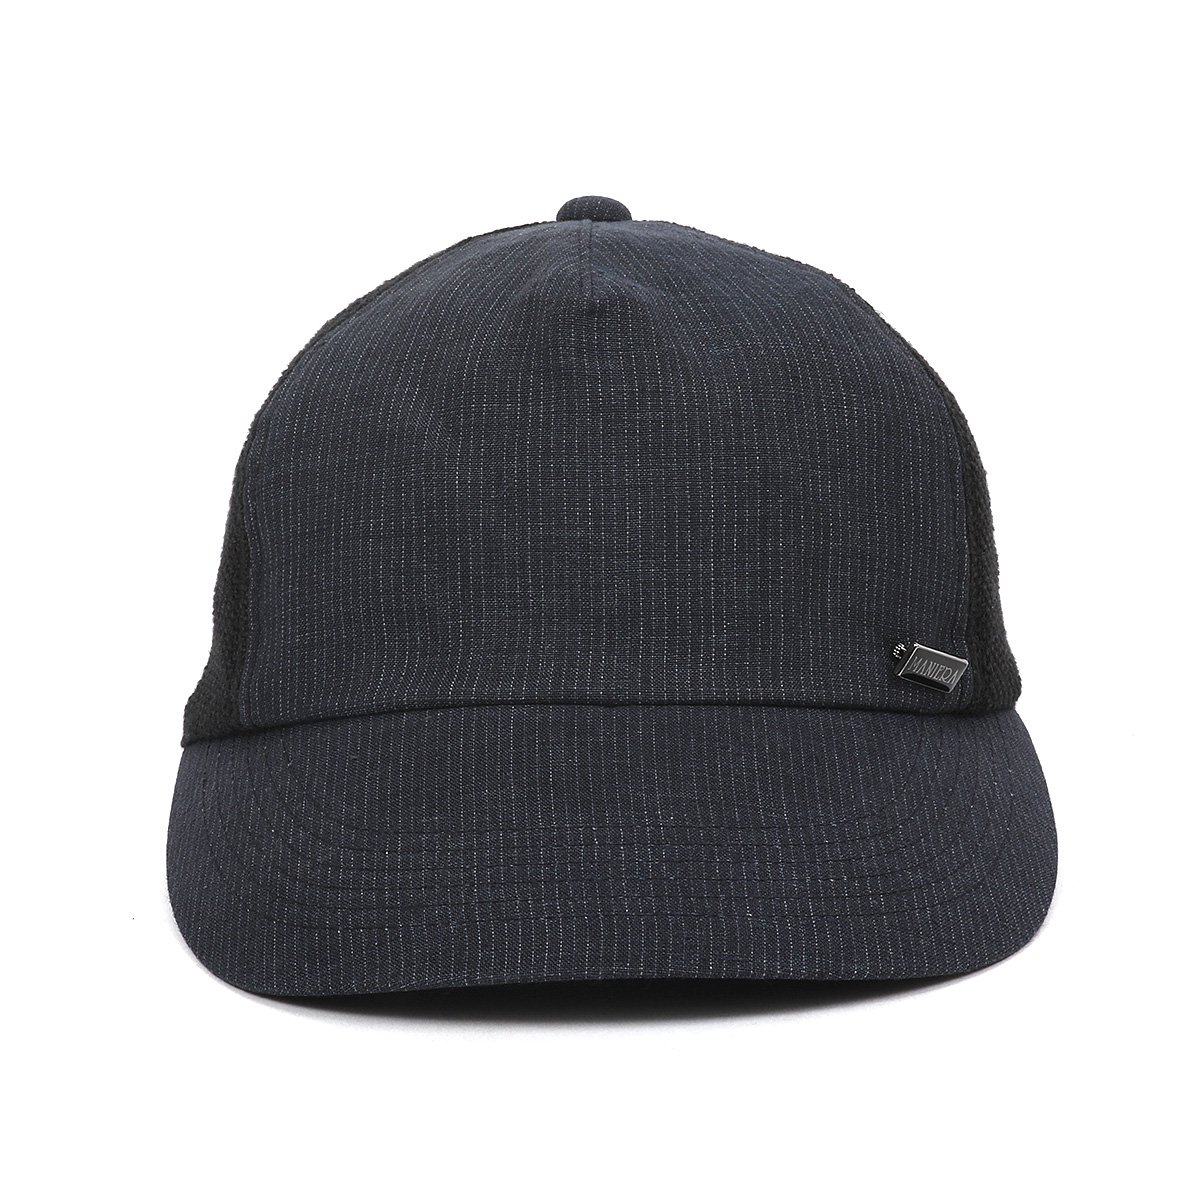 COMBINATION LINEN WIDECAP 詳細画像2